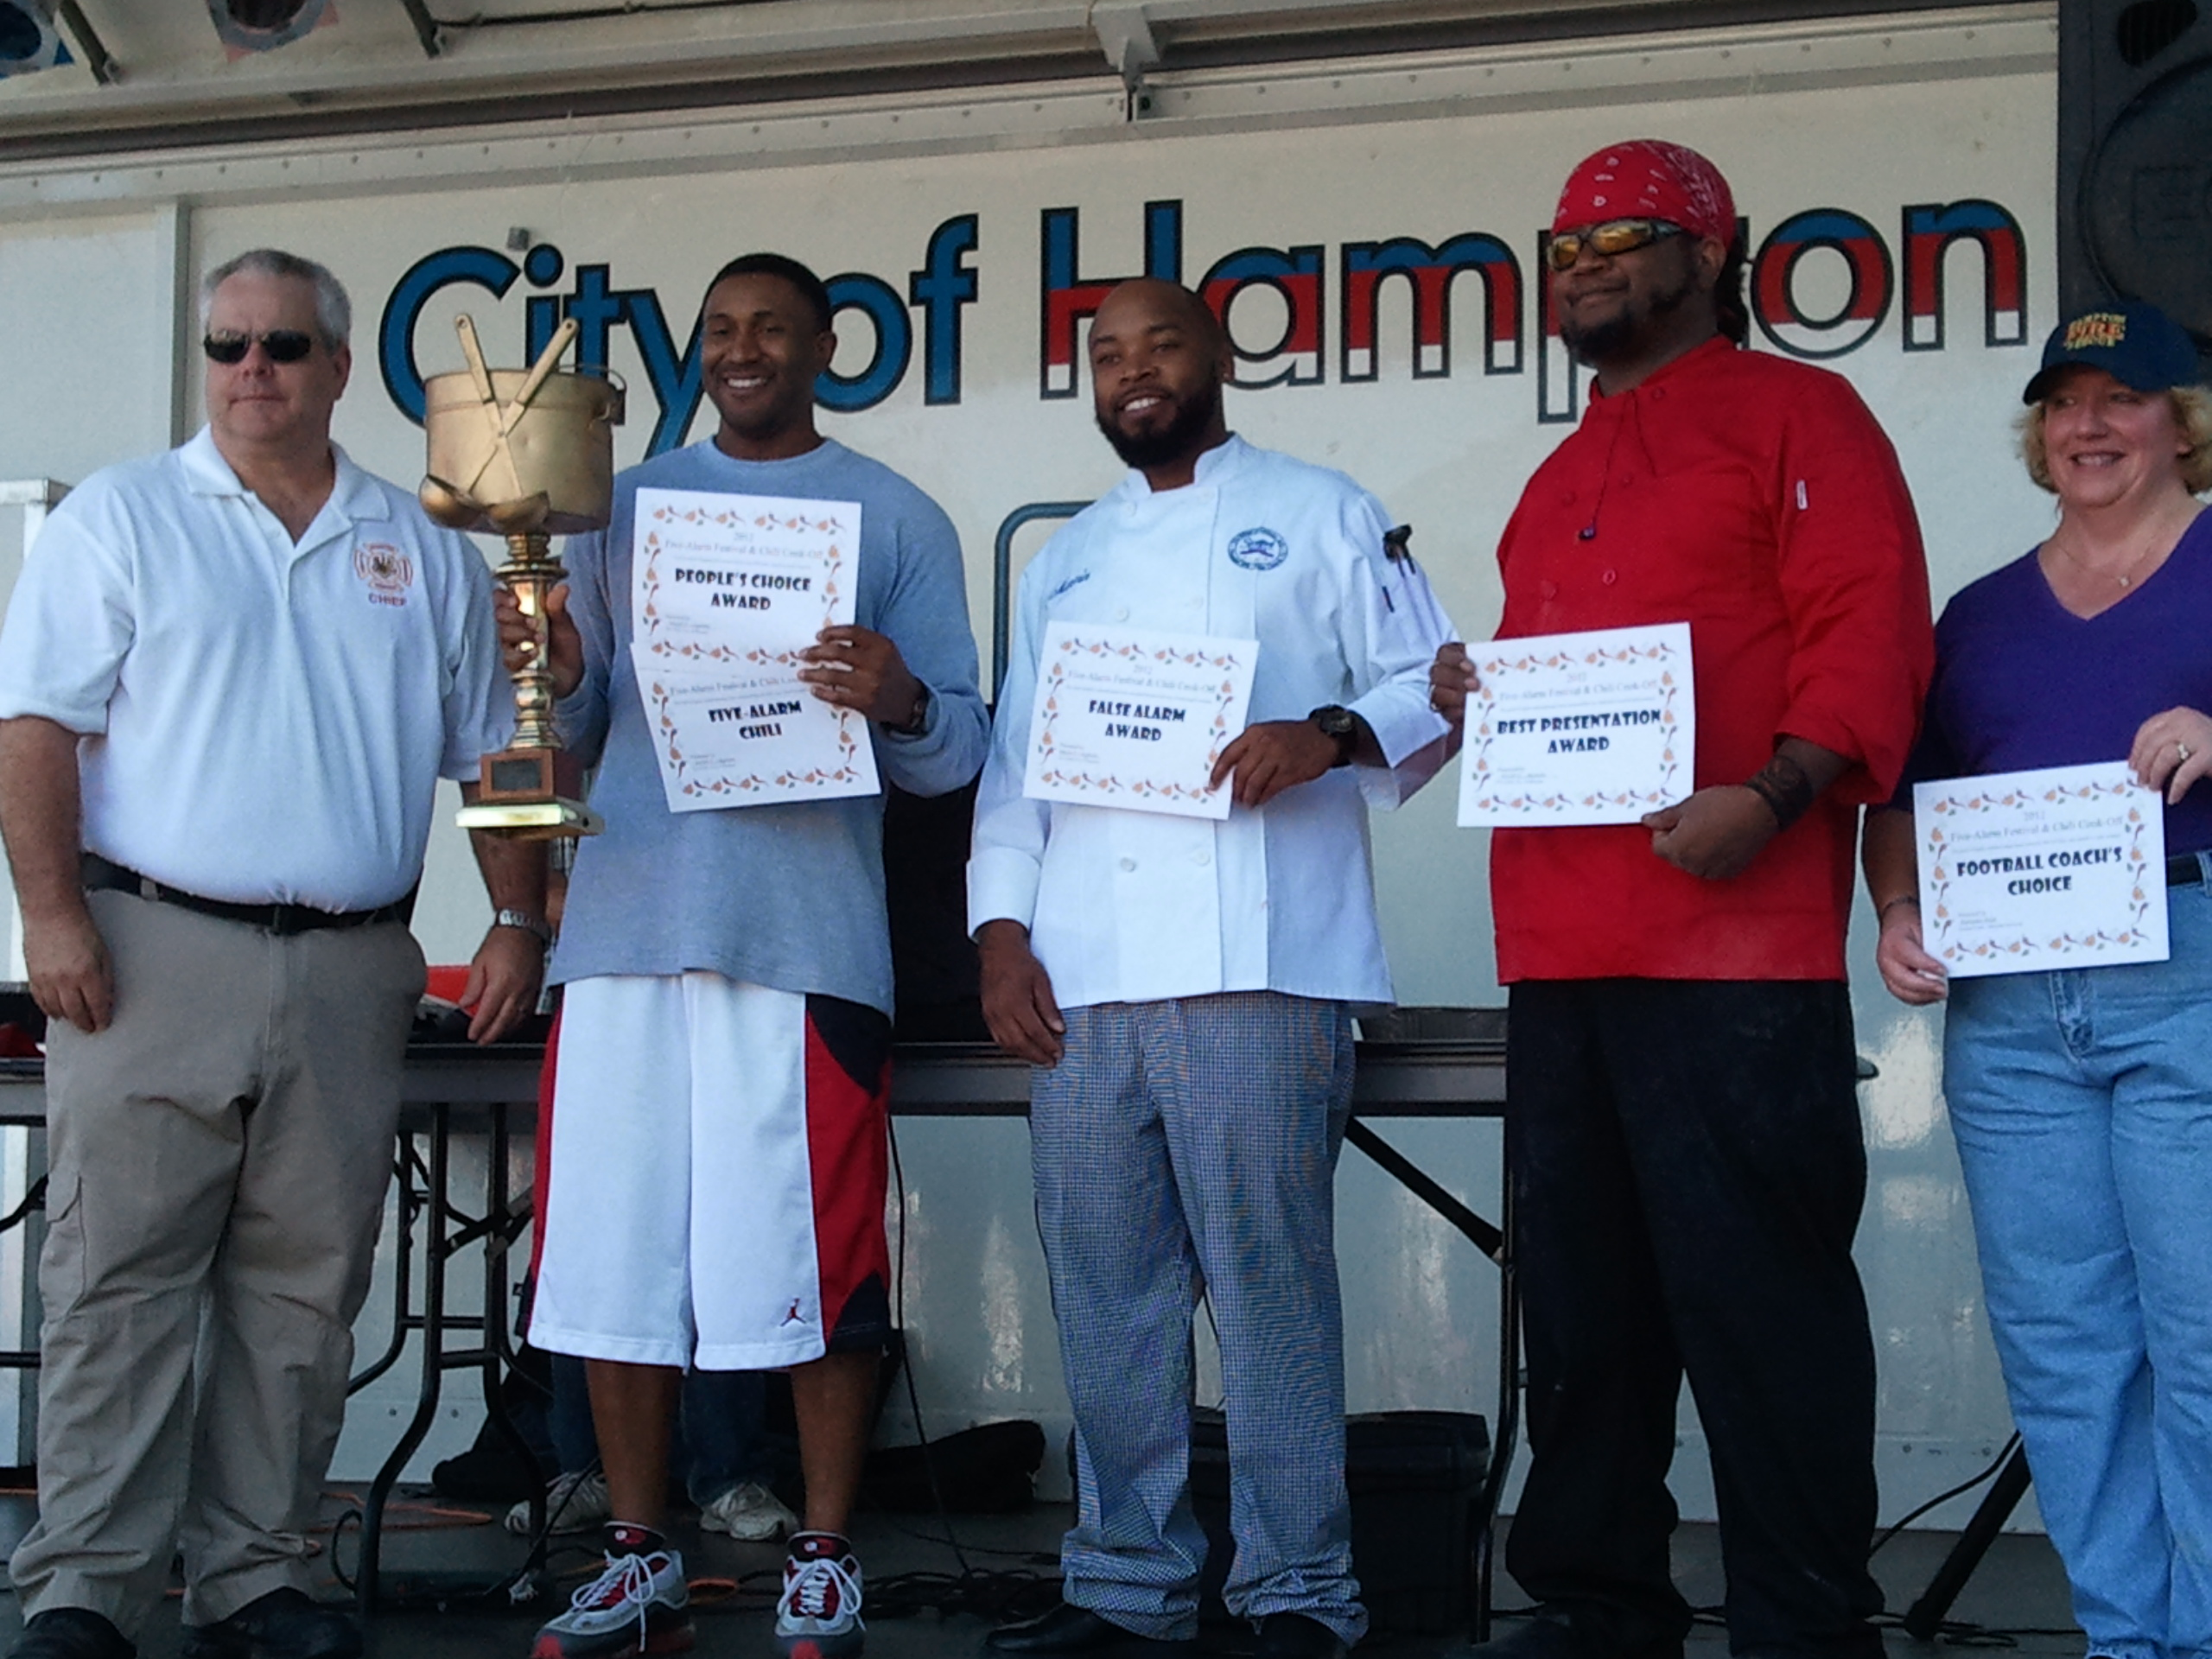 Cookoff awards are presented